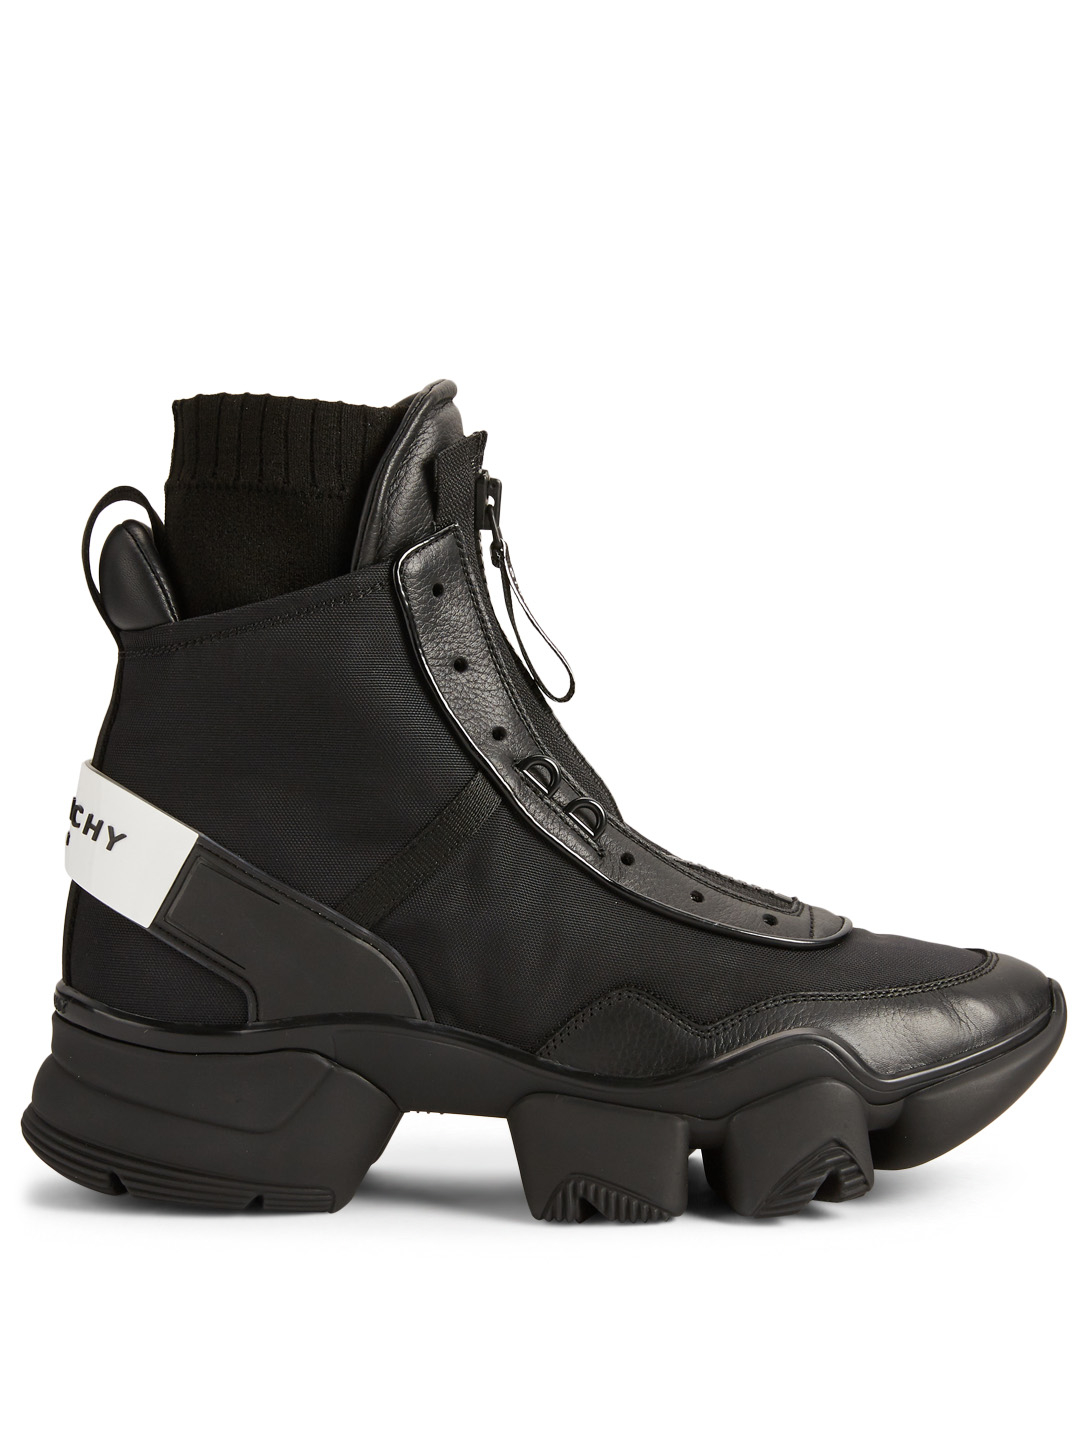 GIVENCHY Jaw Leather And Nylon High-Top Sneakers Men's Black